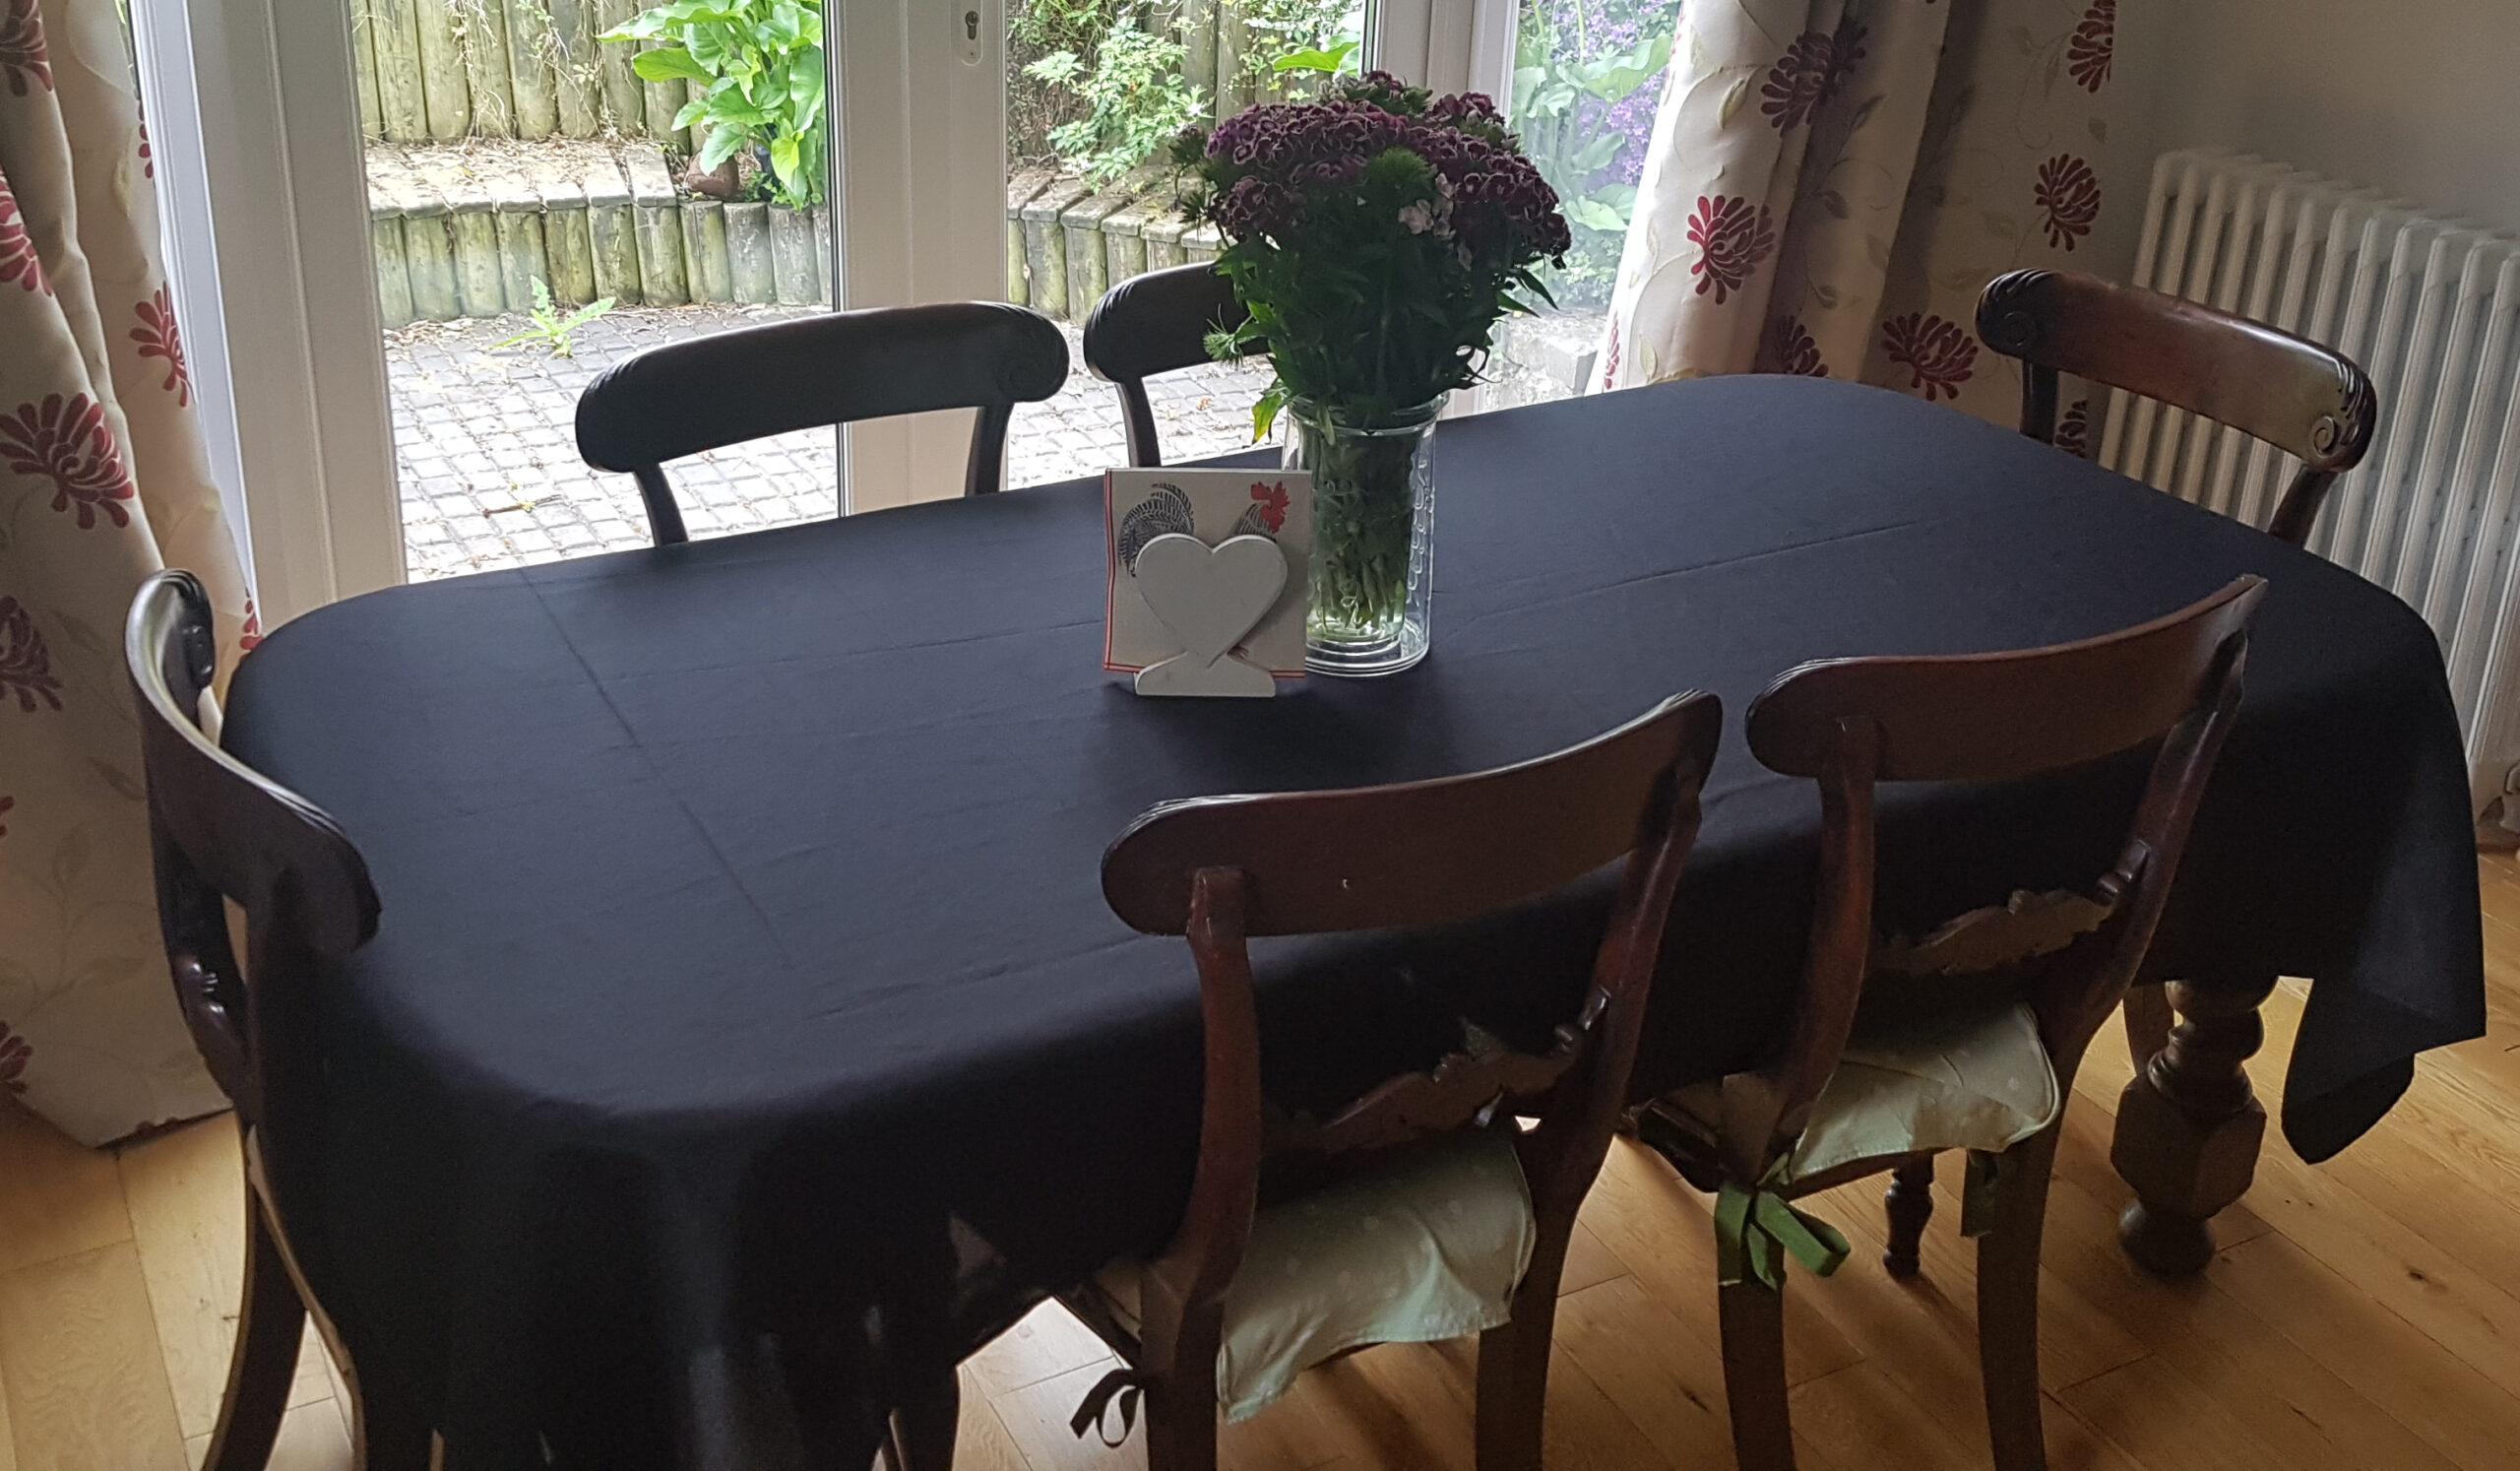 Extra Large Deluxe Tablecloth, Stain Resistant Terylene Twill Plain, 6-8 settings, 250x142cm, Black